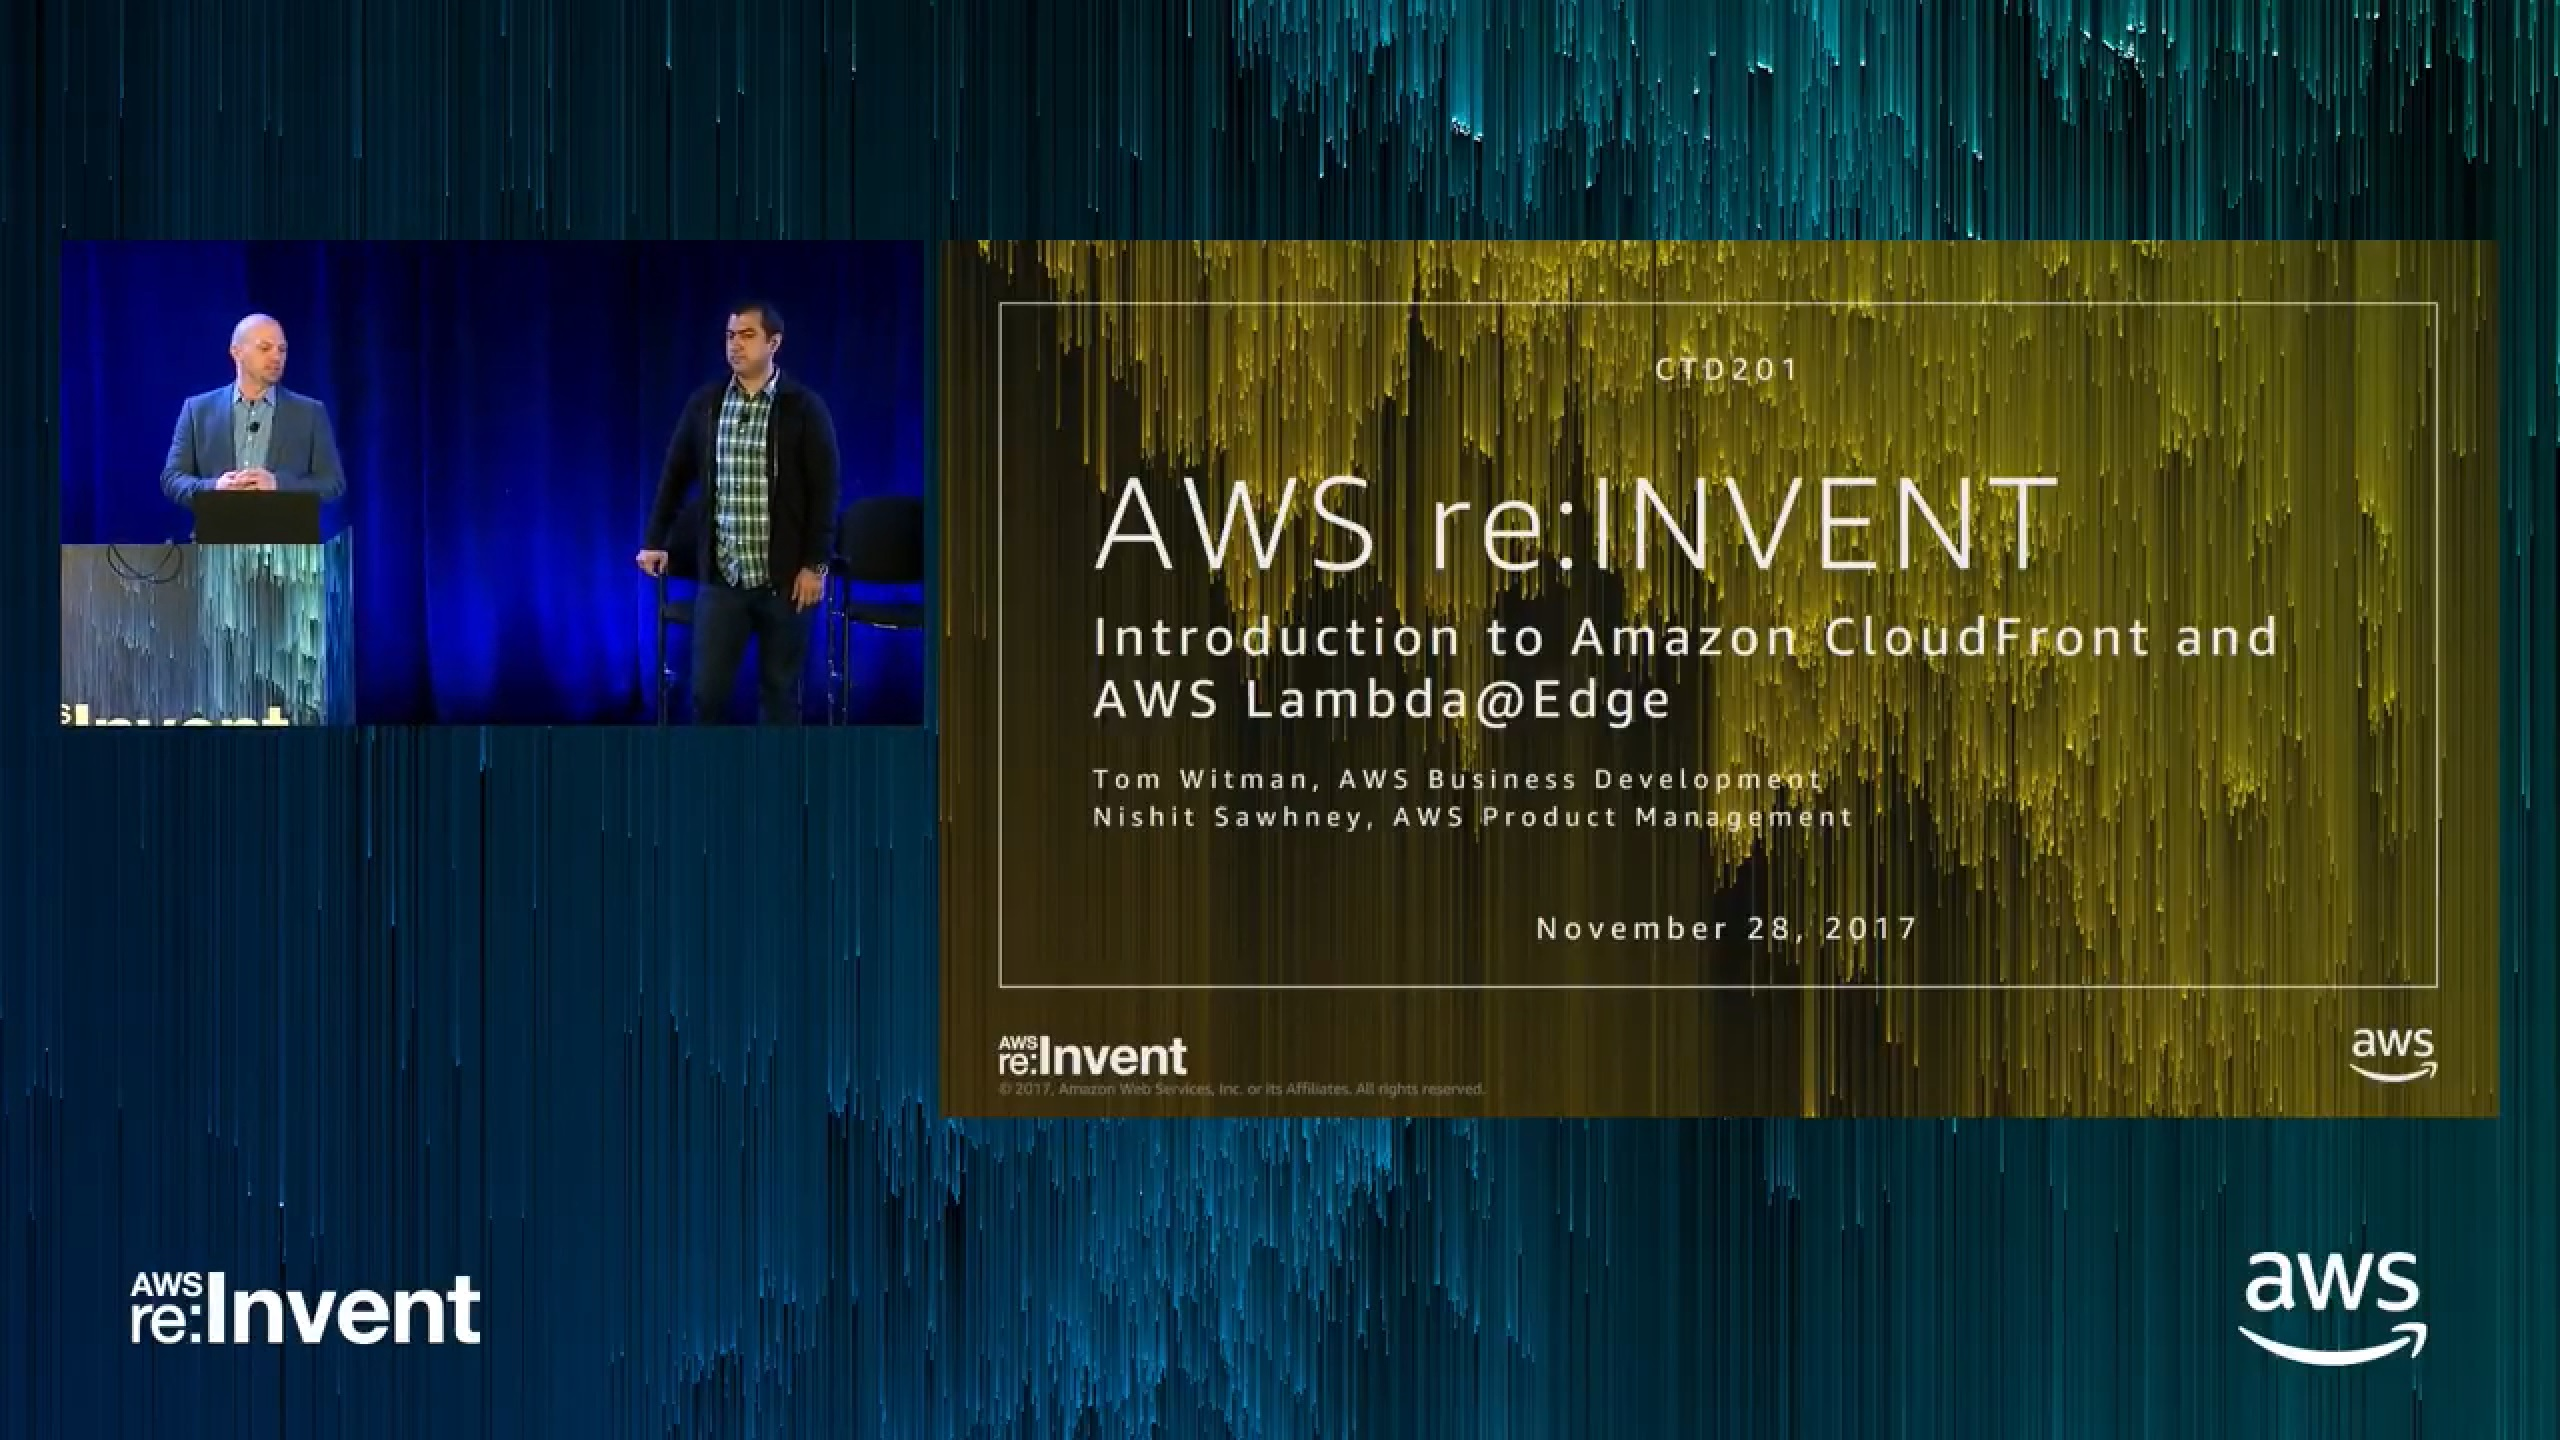 Amazon CloudFront e AWS Lambda@Edge